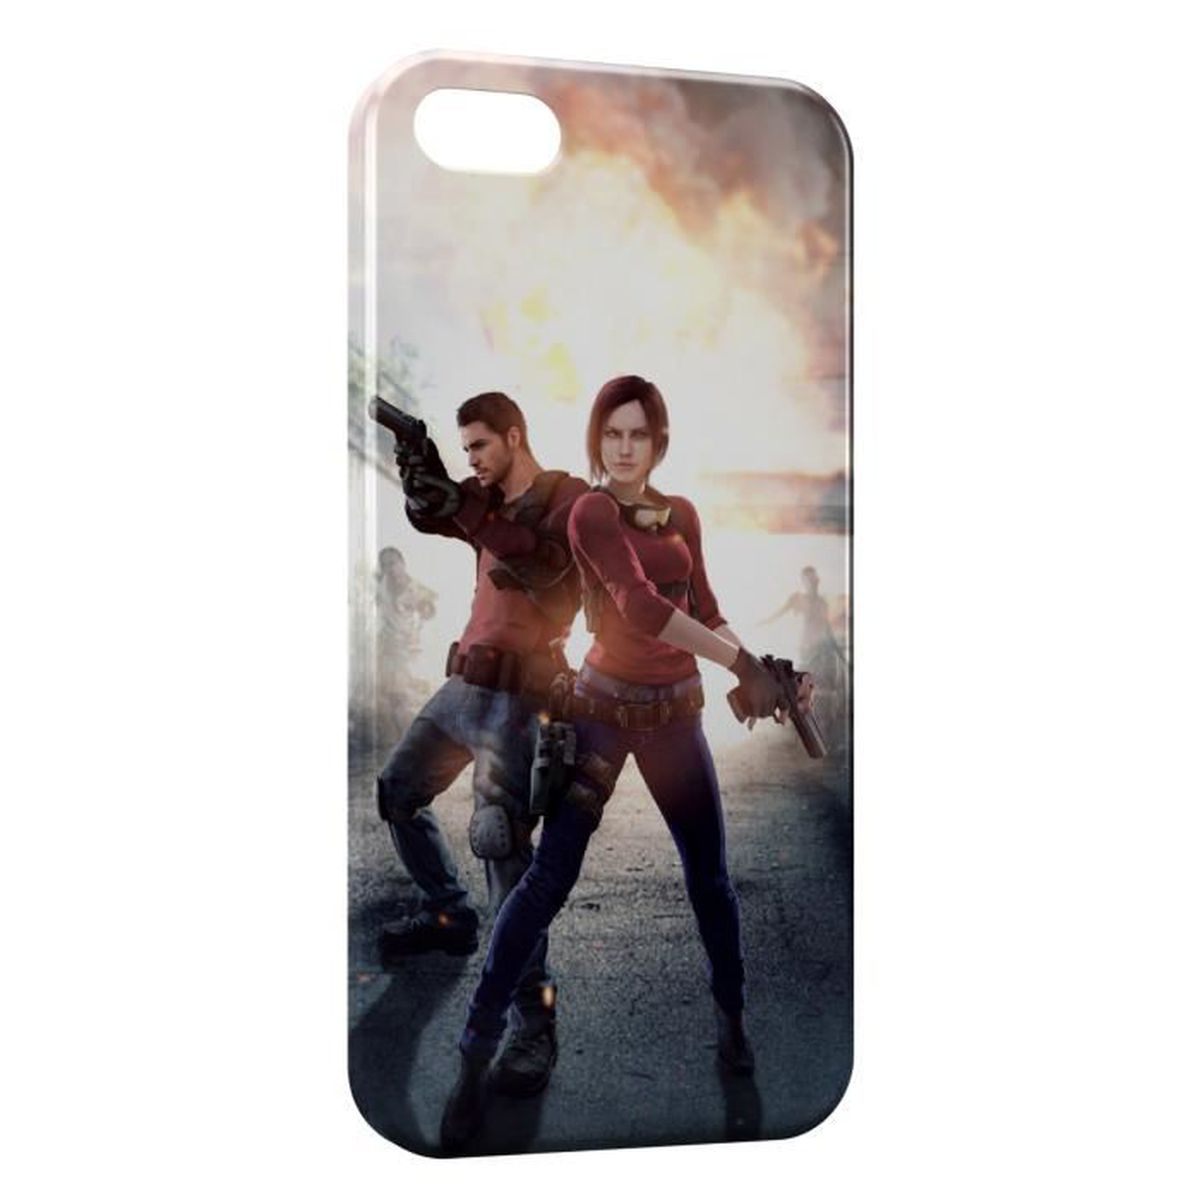 coque iphone 5 resident evil